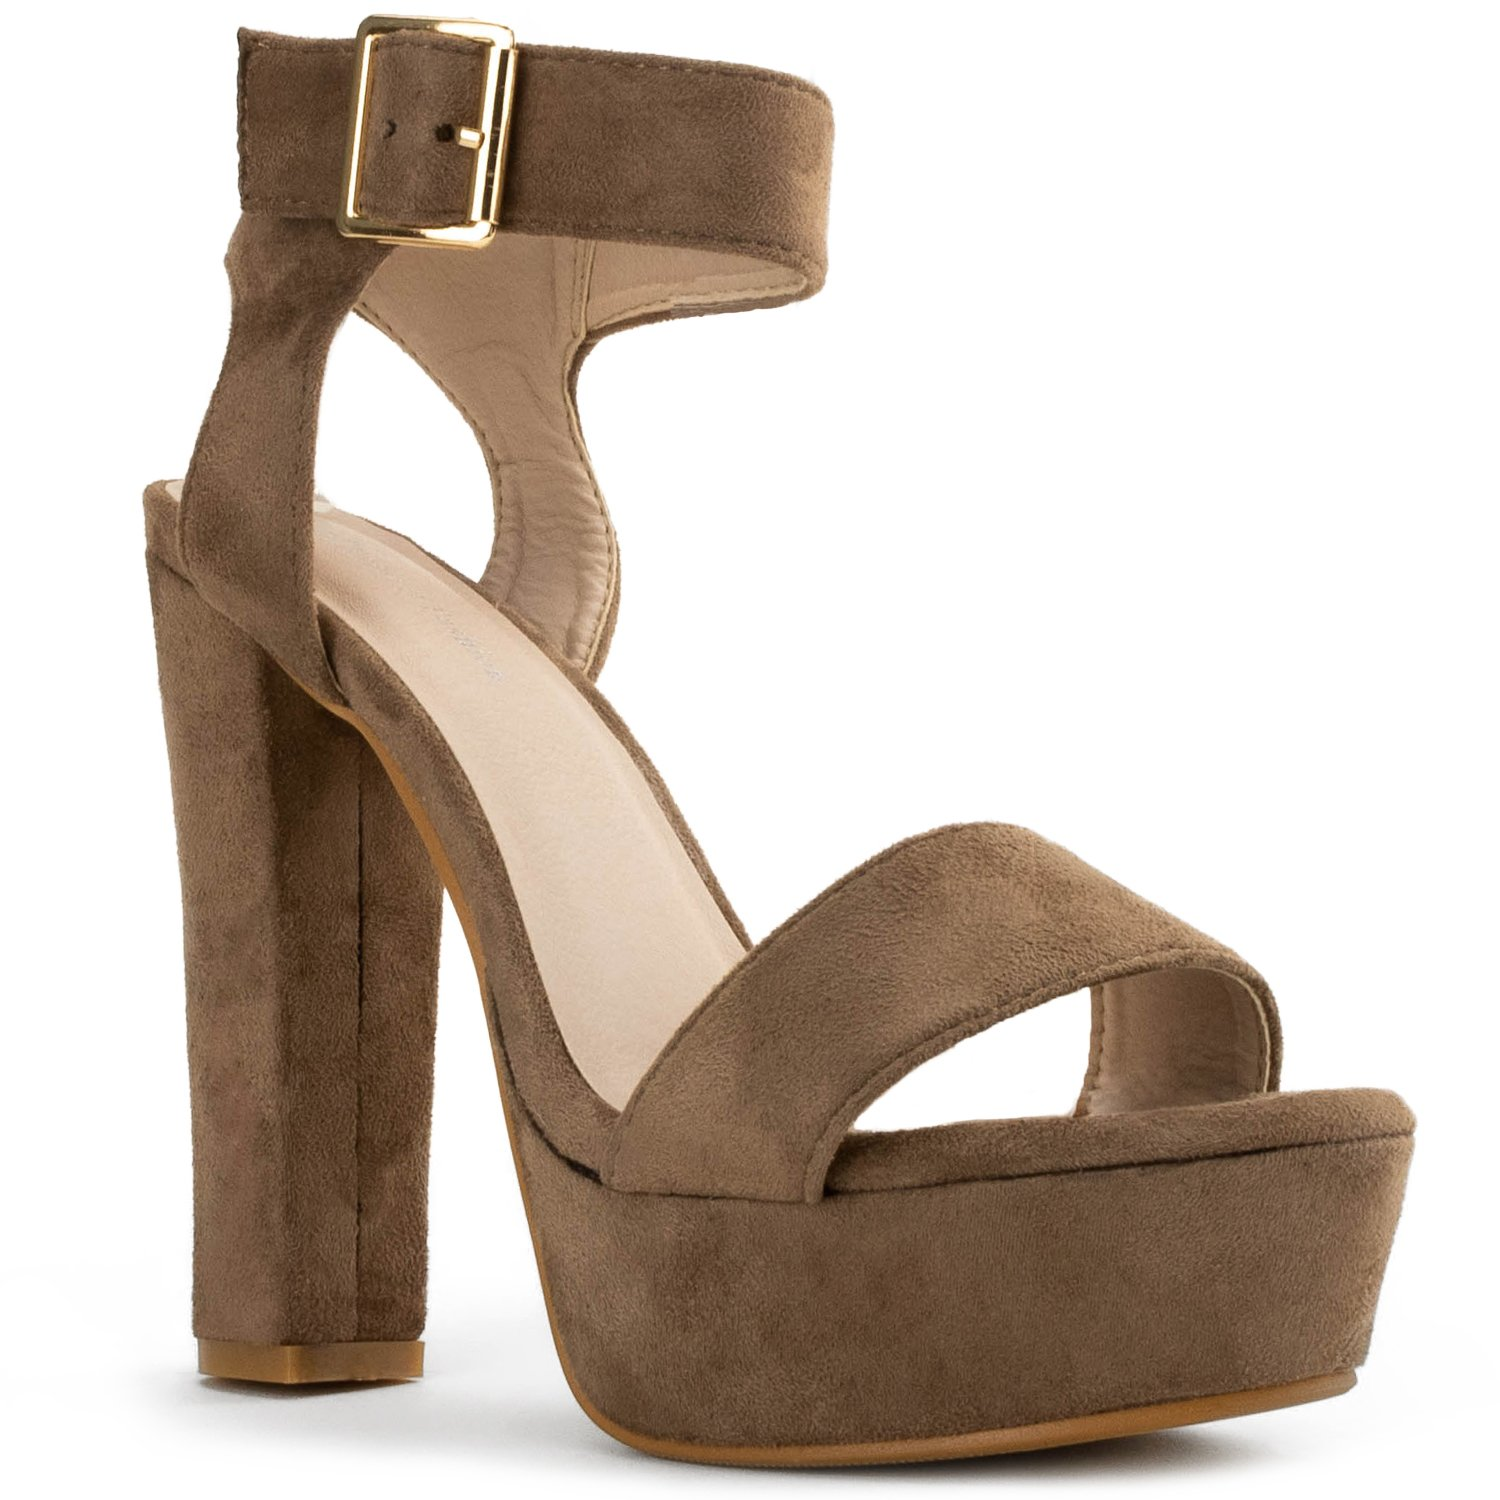 Taupe Suede Room Of Fashion RF Fashion D'Orsay Ankle Strap Kitten Heel Dress Sandal - Ess.